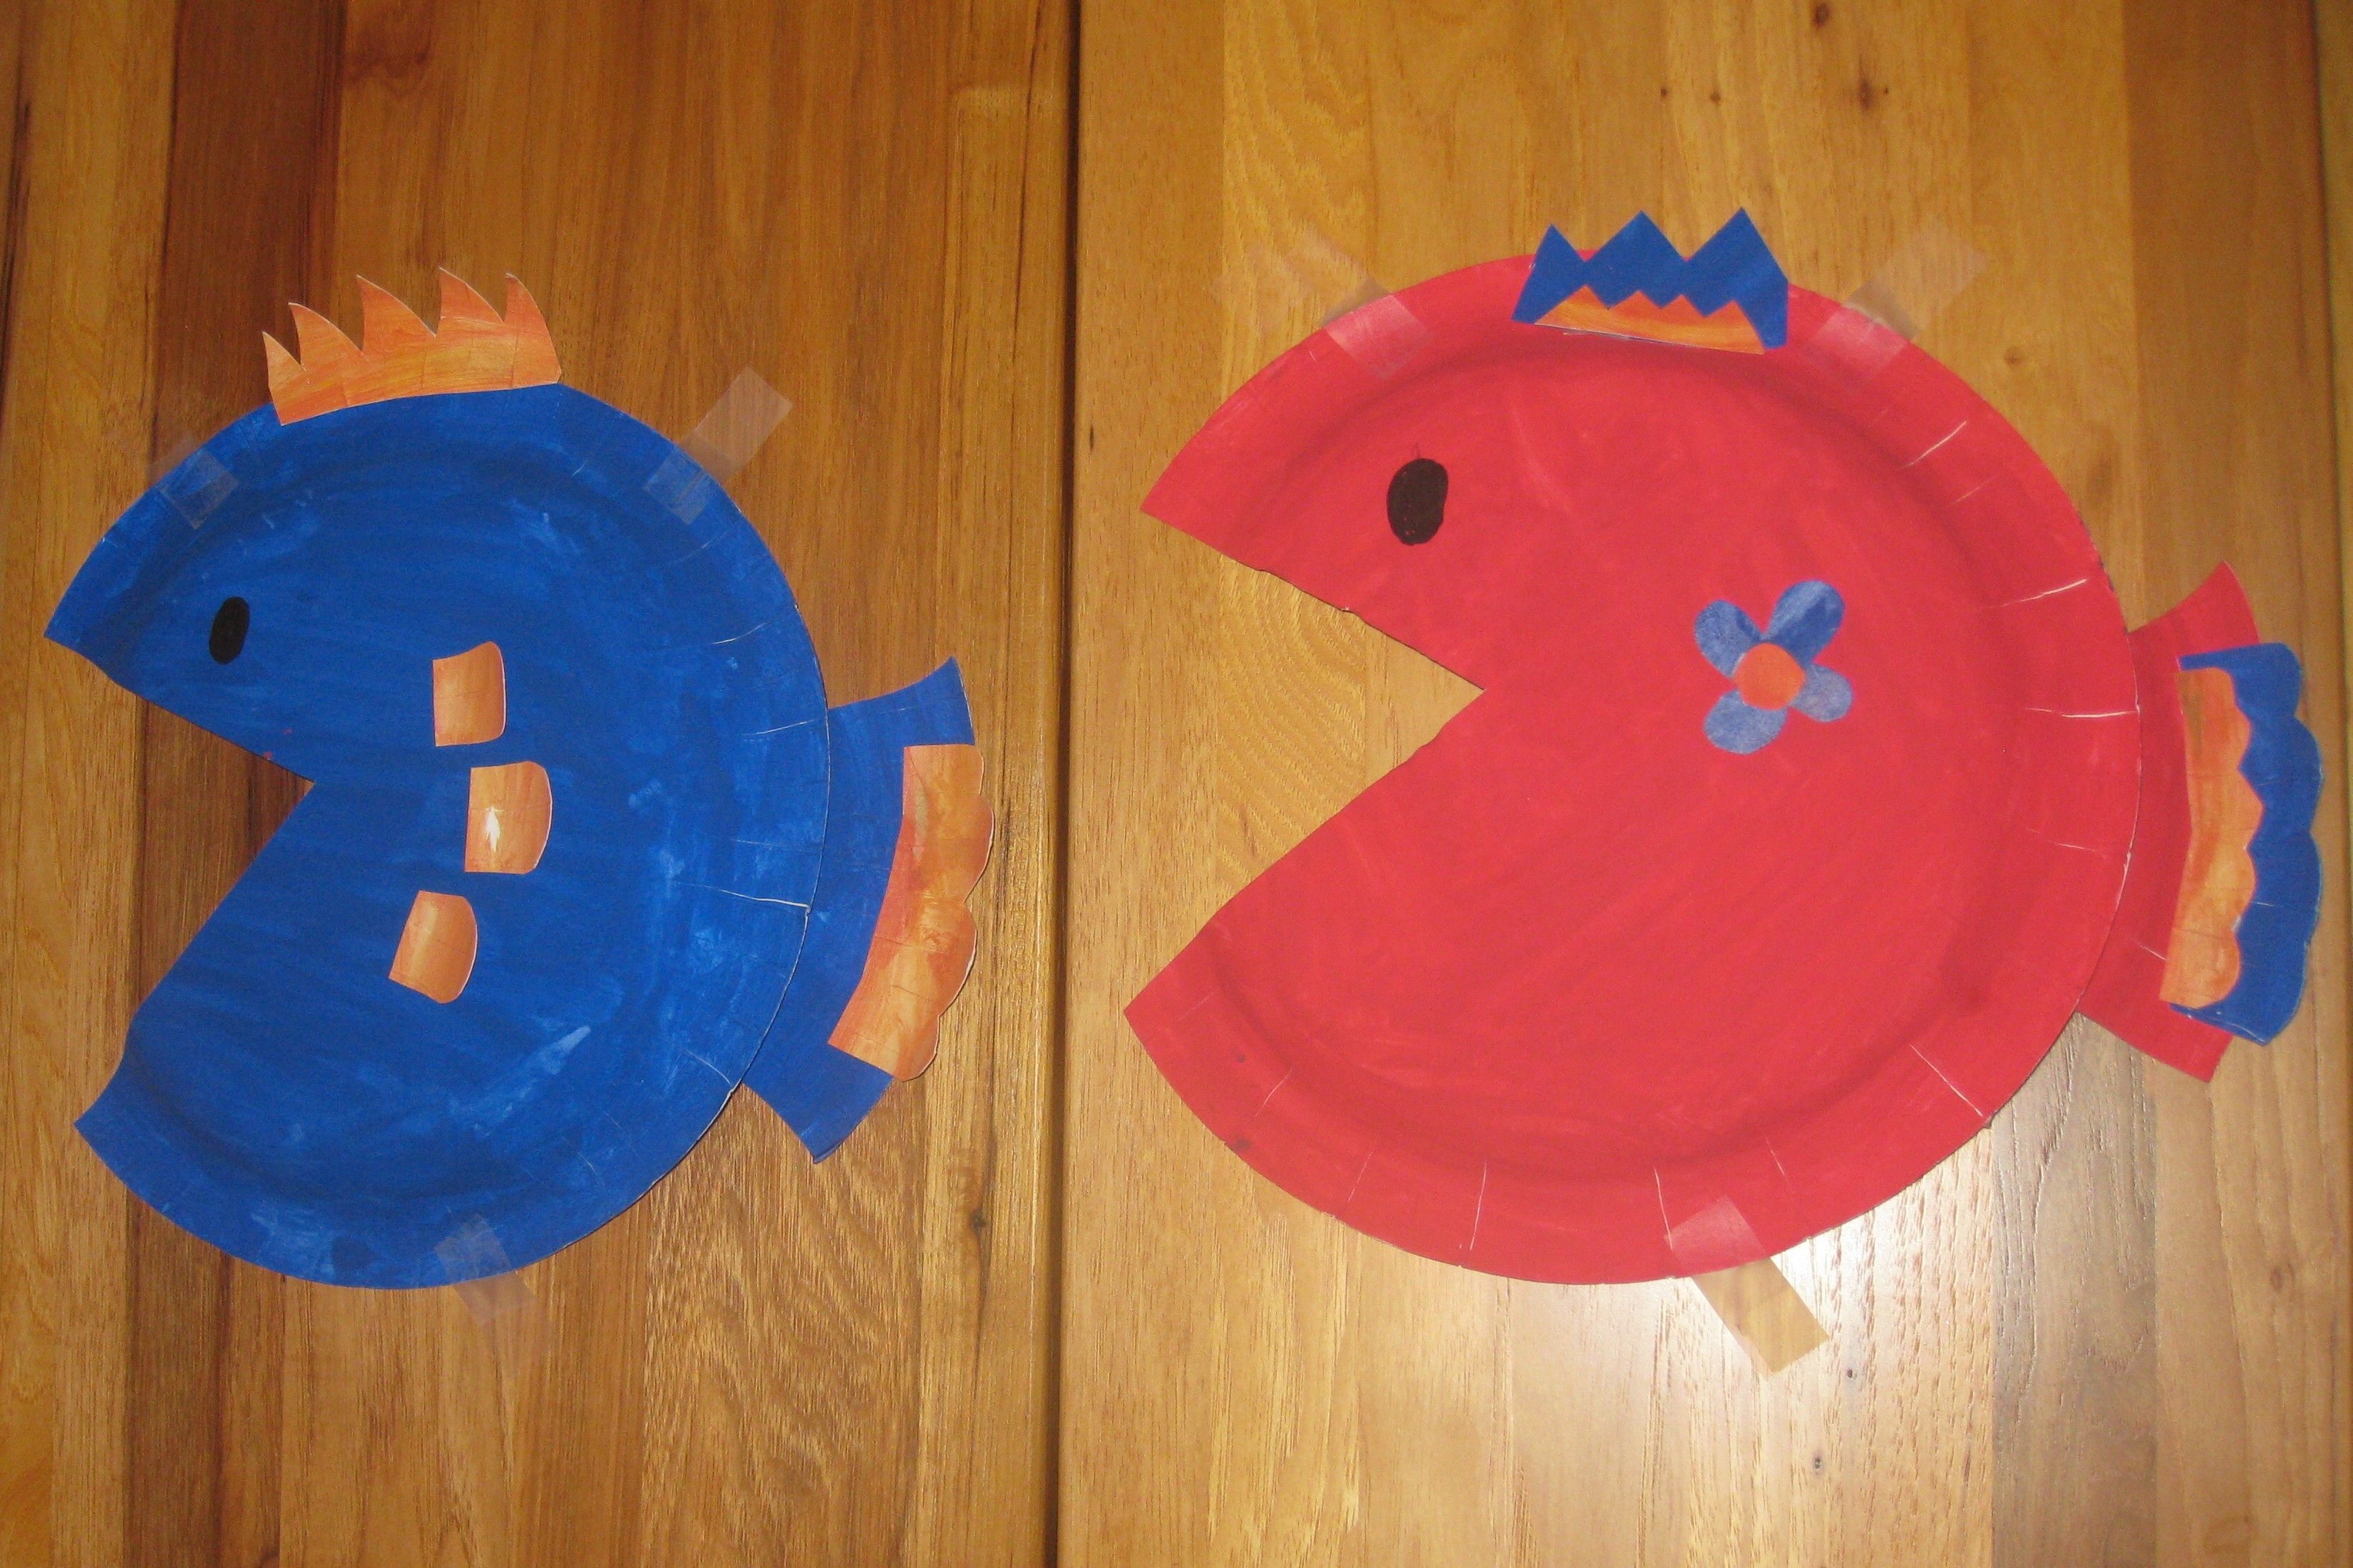 Pre-School Art - Paper Plate Fish - Paint Plates, Cut out Triangle ...